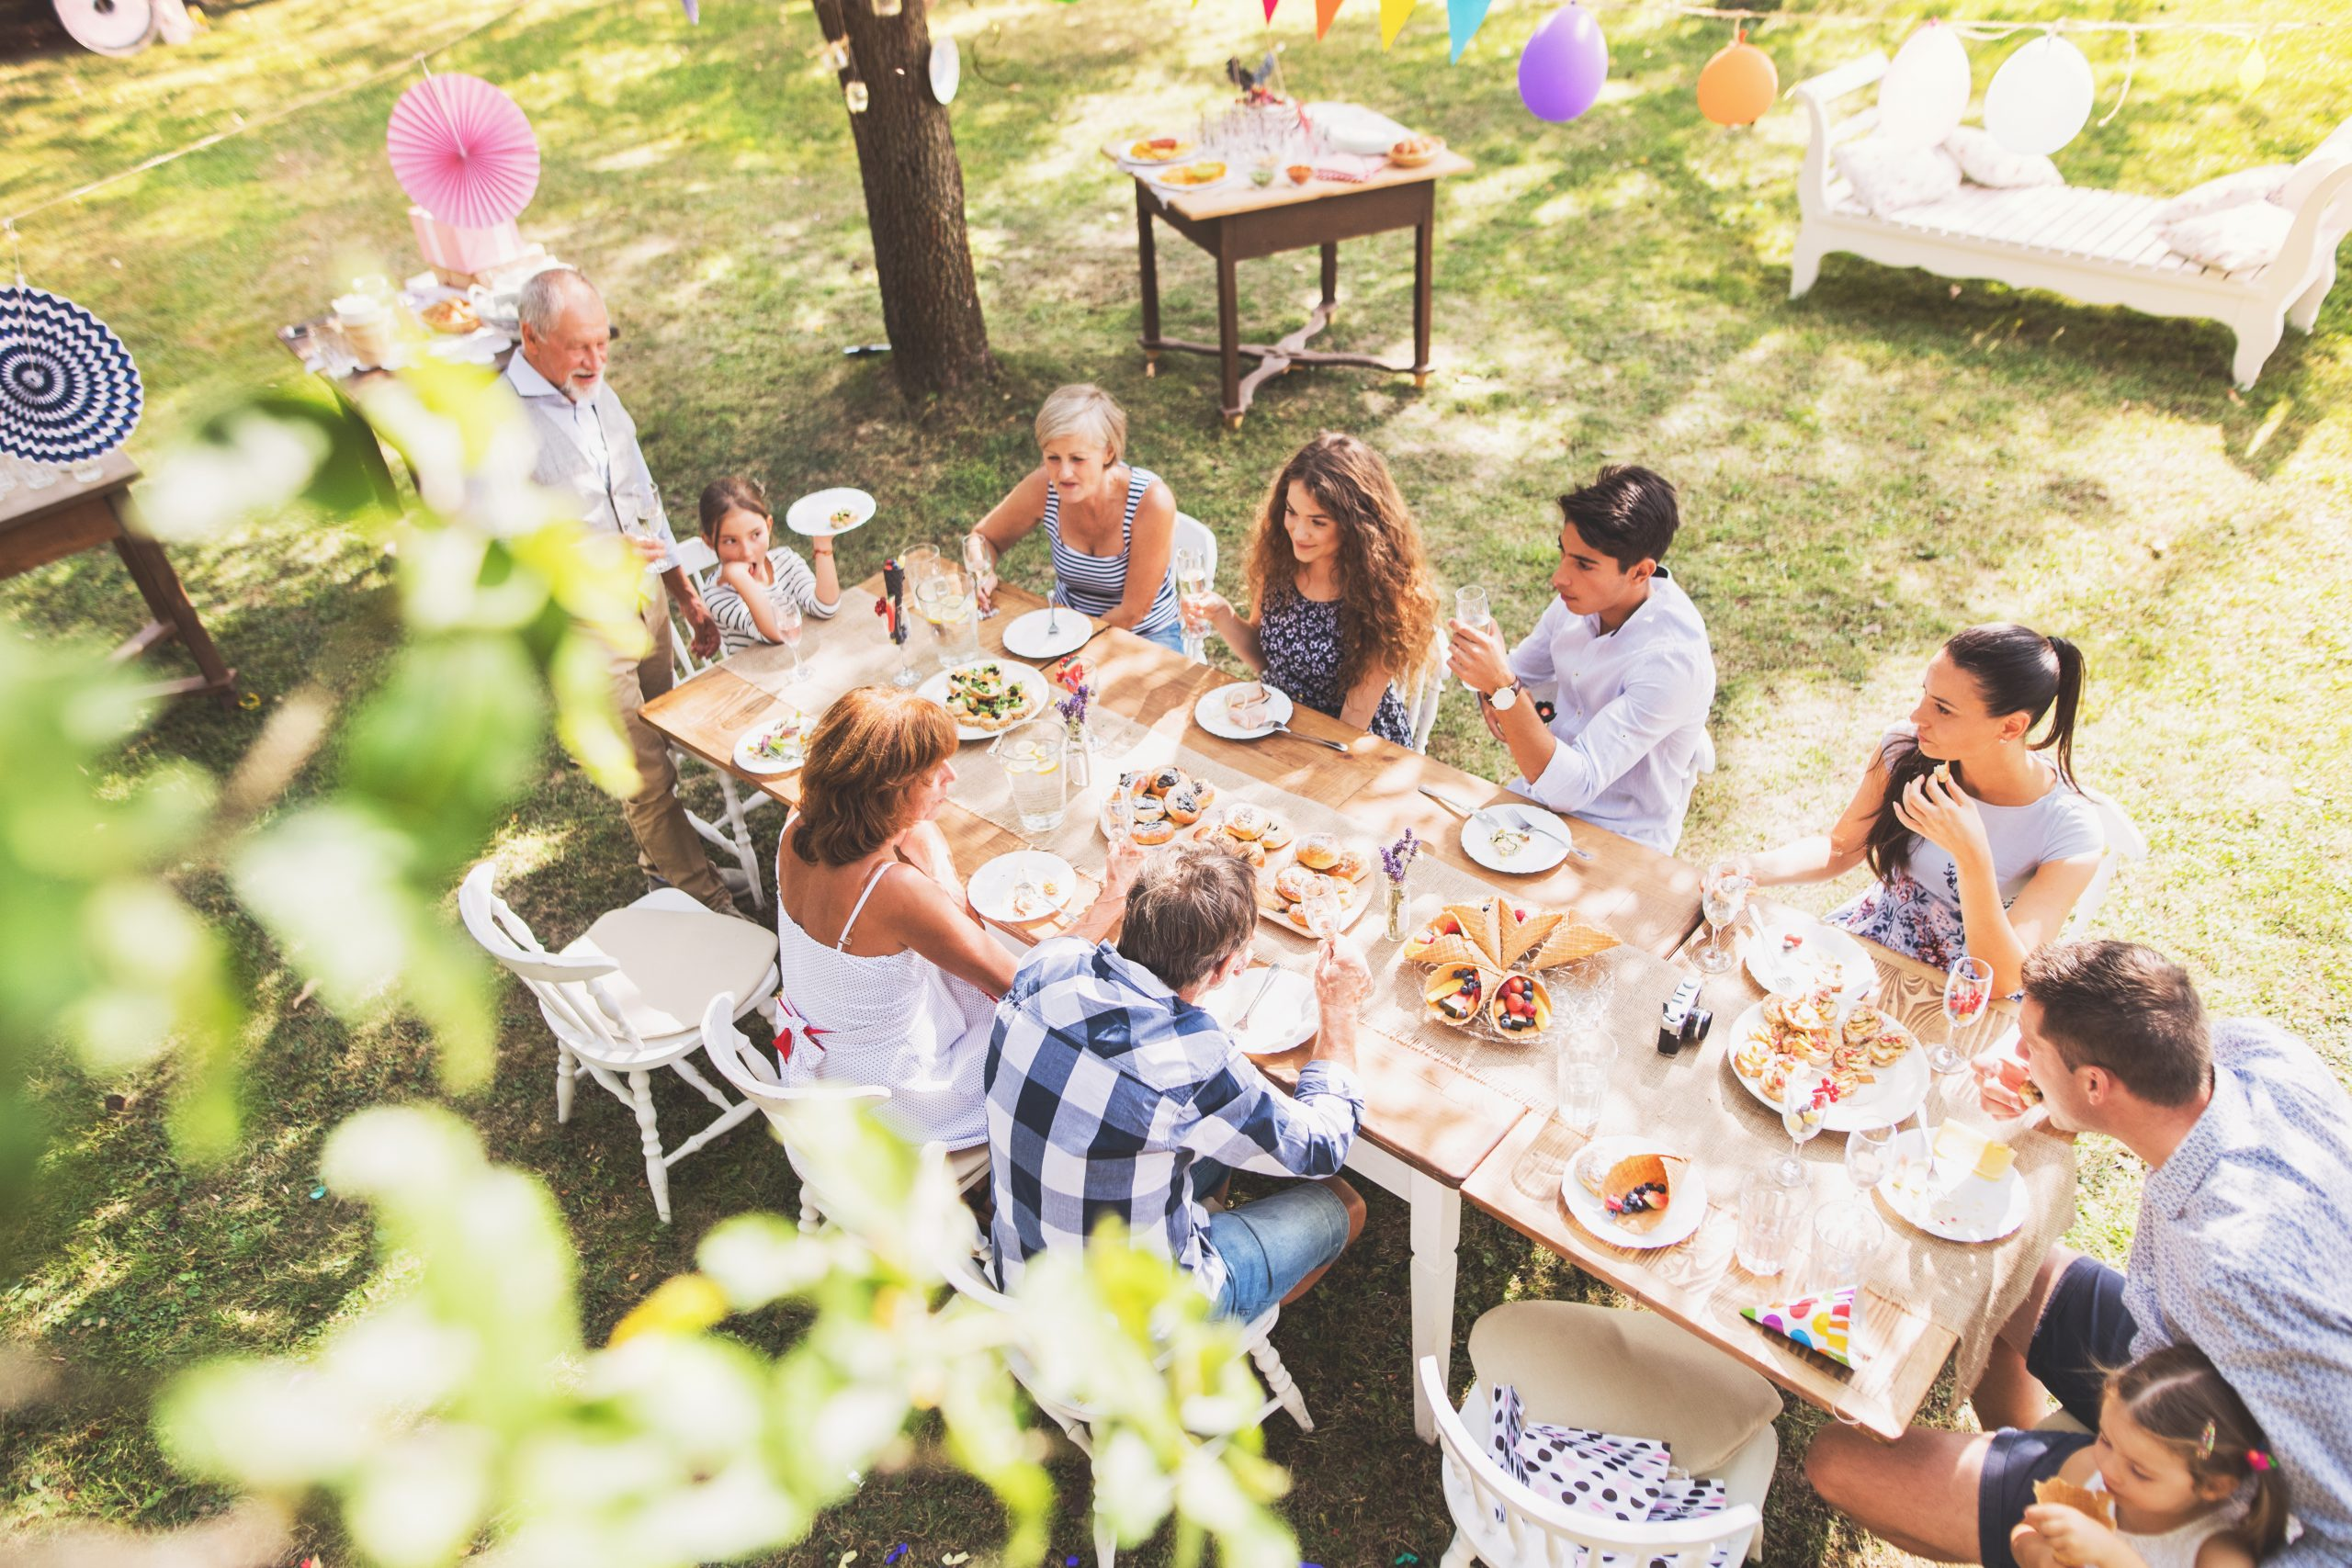 Family celebration outside in the backyard. Big garden party. High angle view.